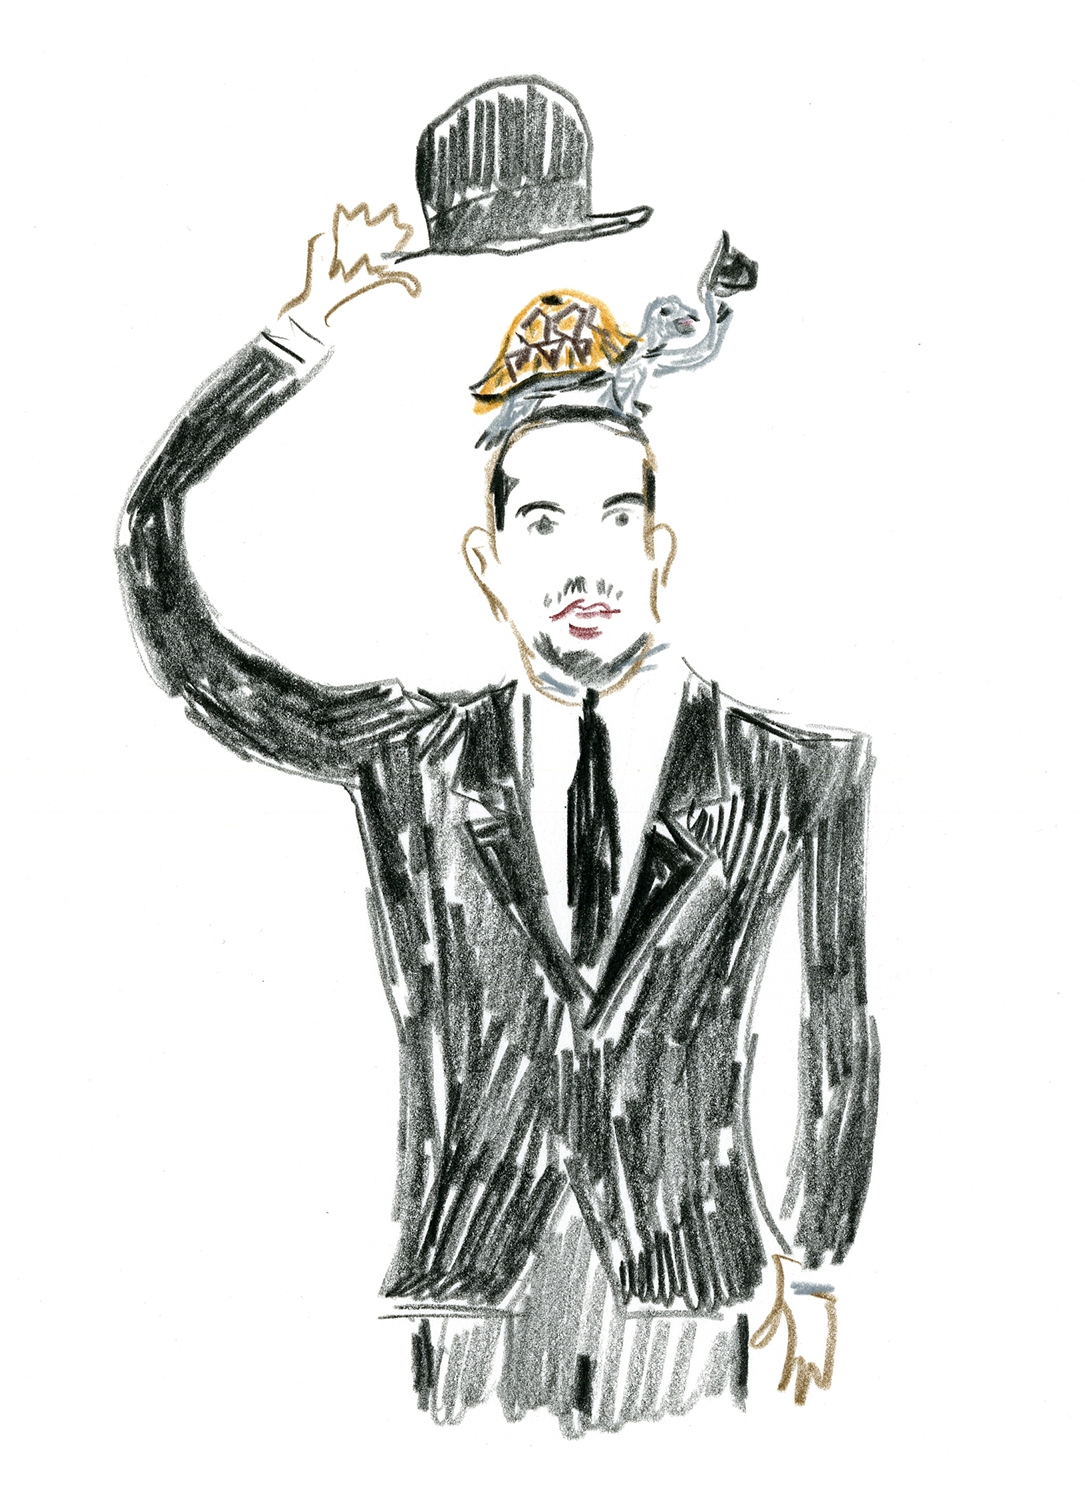 David Blaine for the Turtle Conservancy Benefit